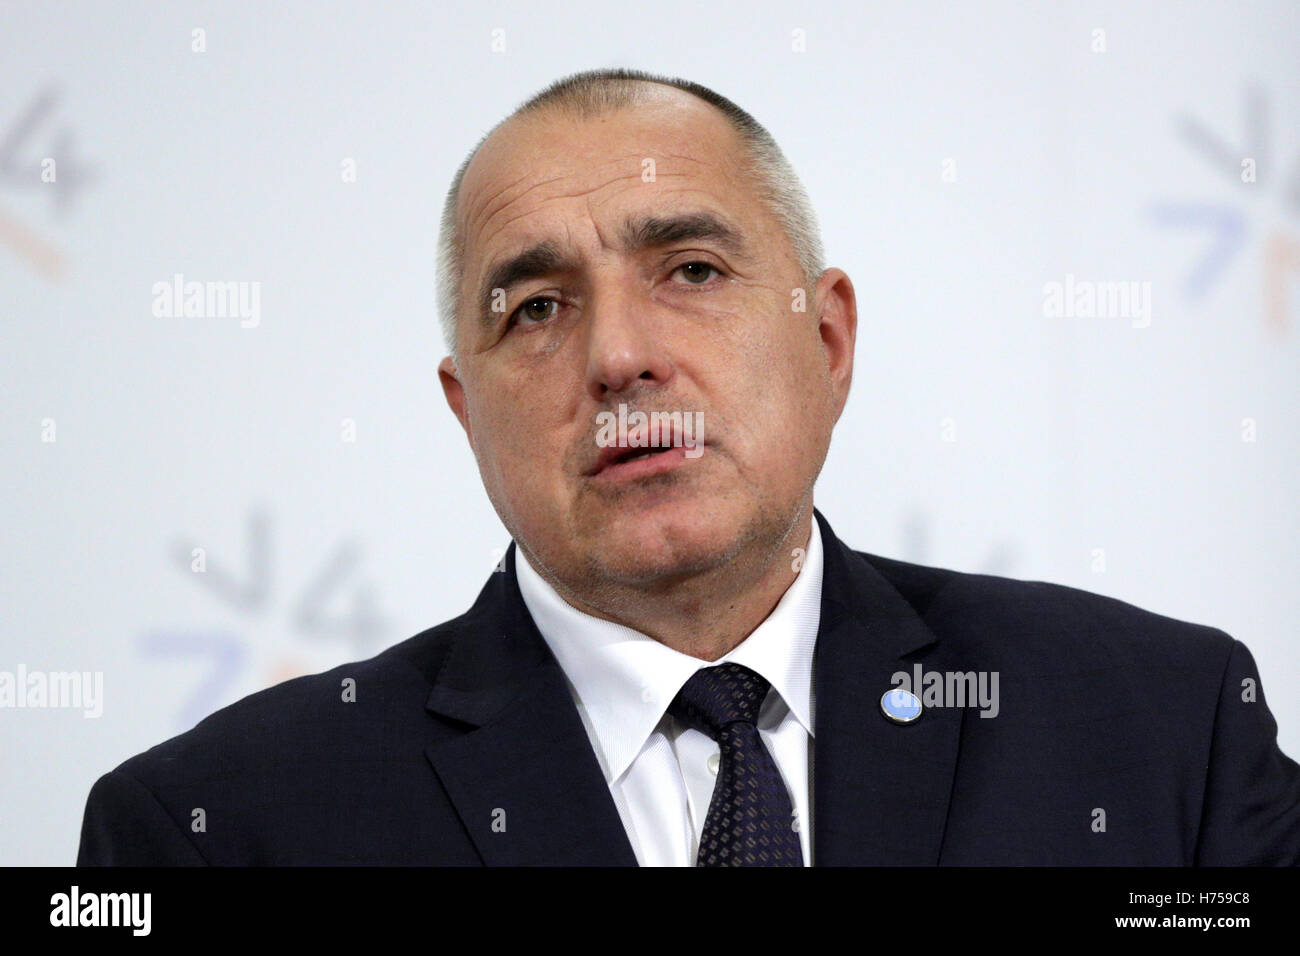 Prague, Czech Republic - February 15, 2016: The Prime Ministers of Bulgaria Boyko Borissov is speaking during a - Stock Image